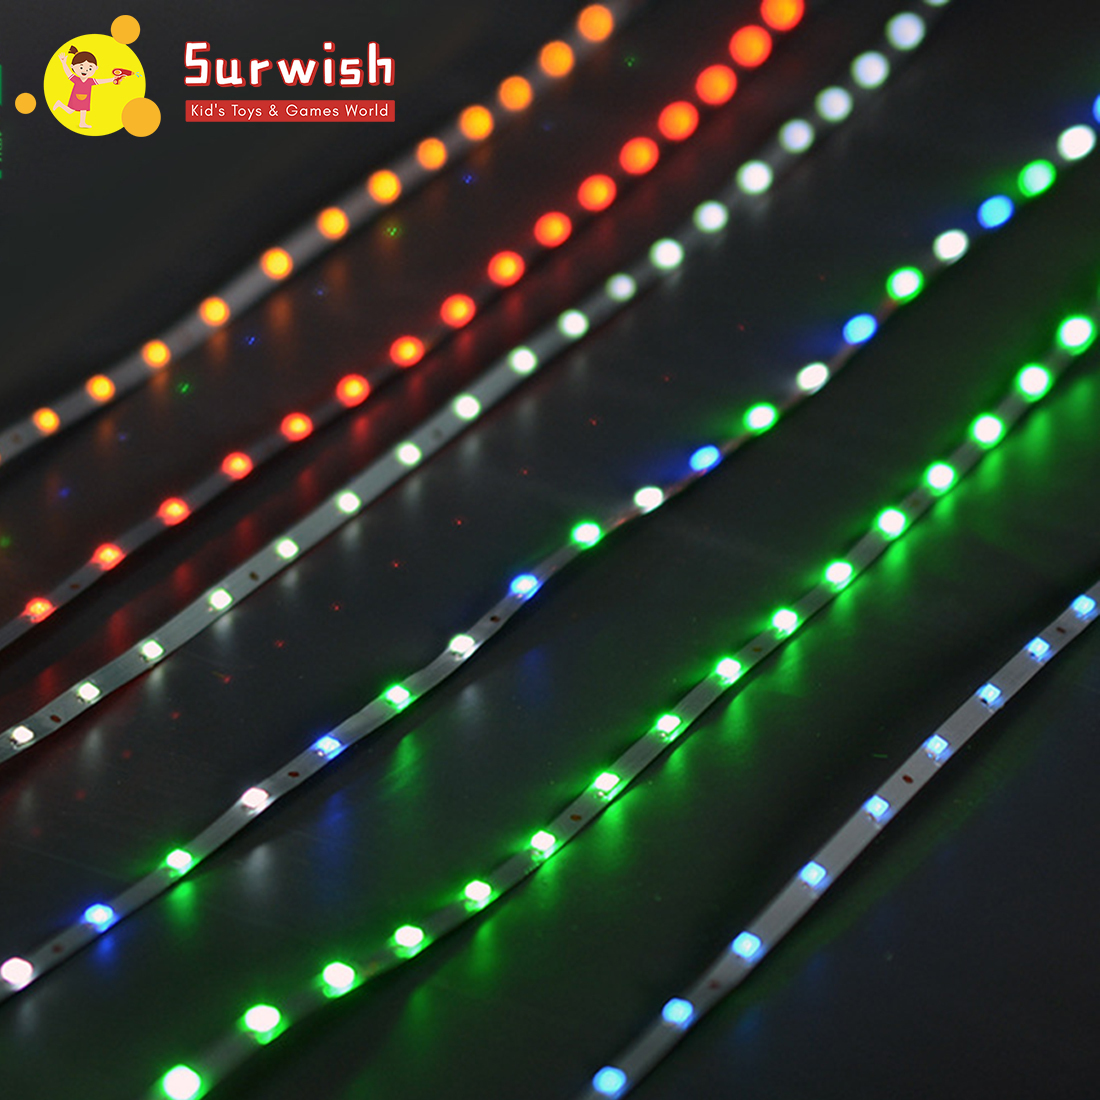 1m 3V Indoor Decorative LED Strip Architecture Sand Table Model Light String - Bright Blue Green White/Green/Red Light